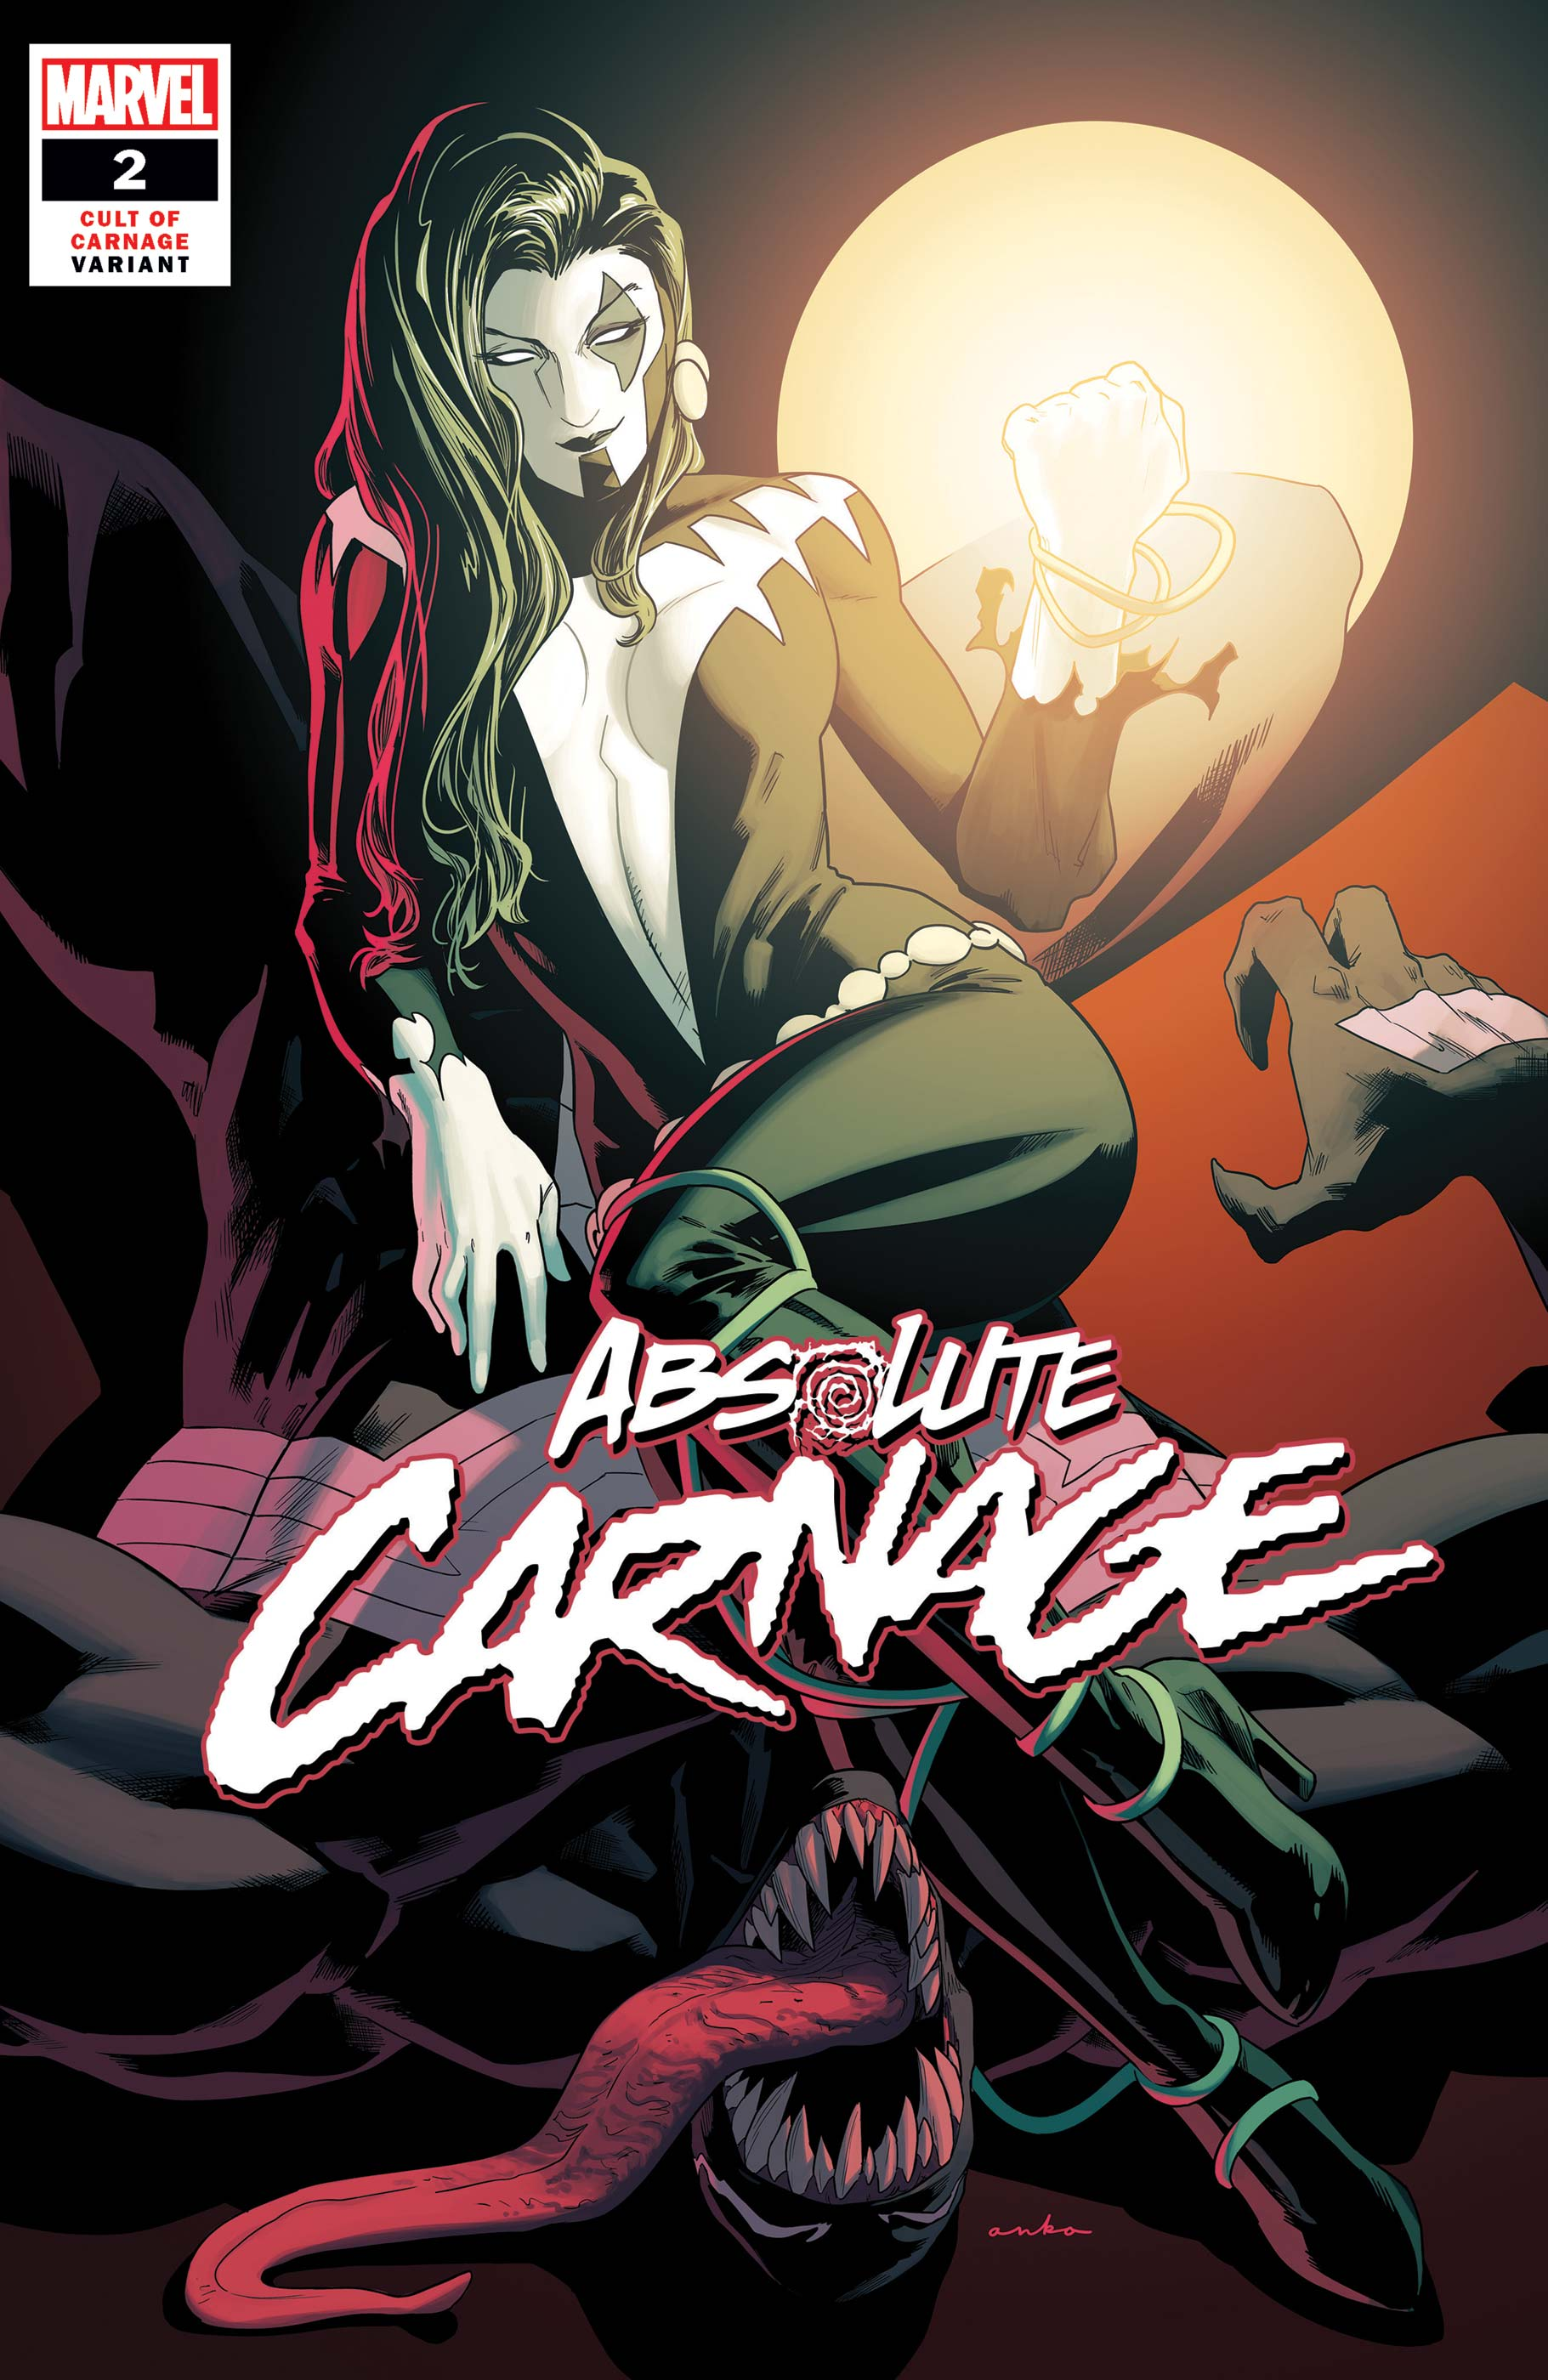 Absolute Carnage (2019) #2 (Variant)